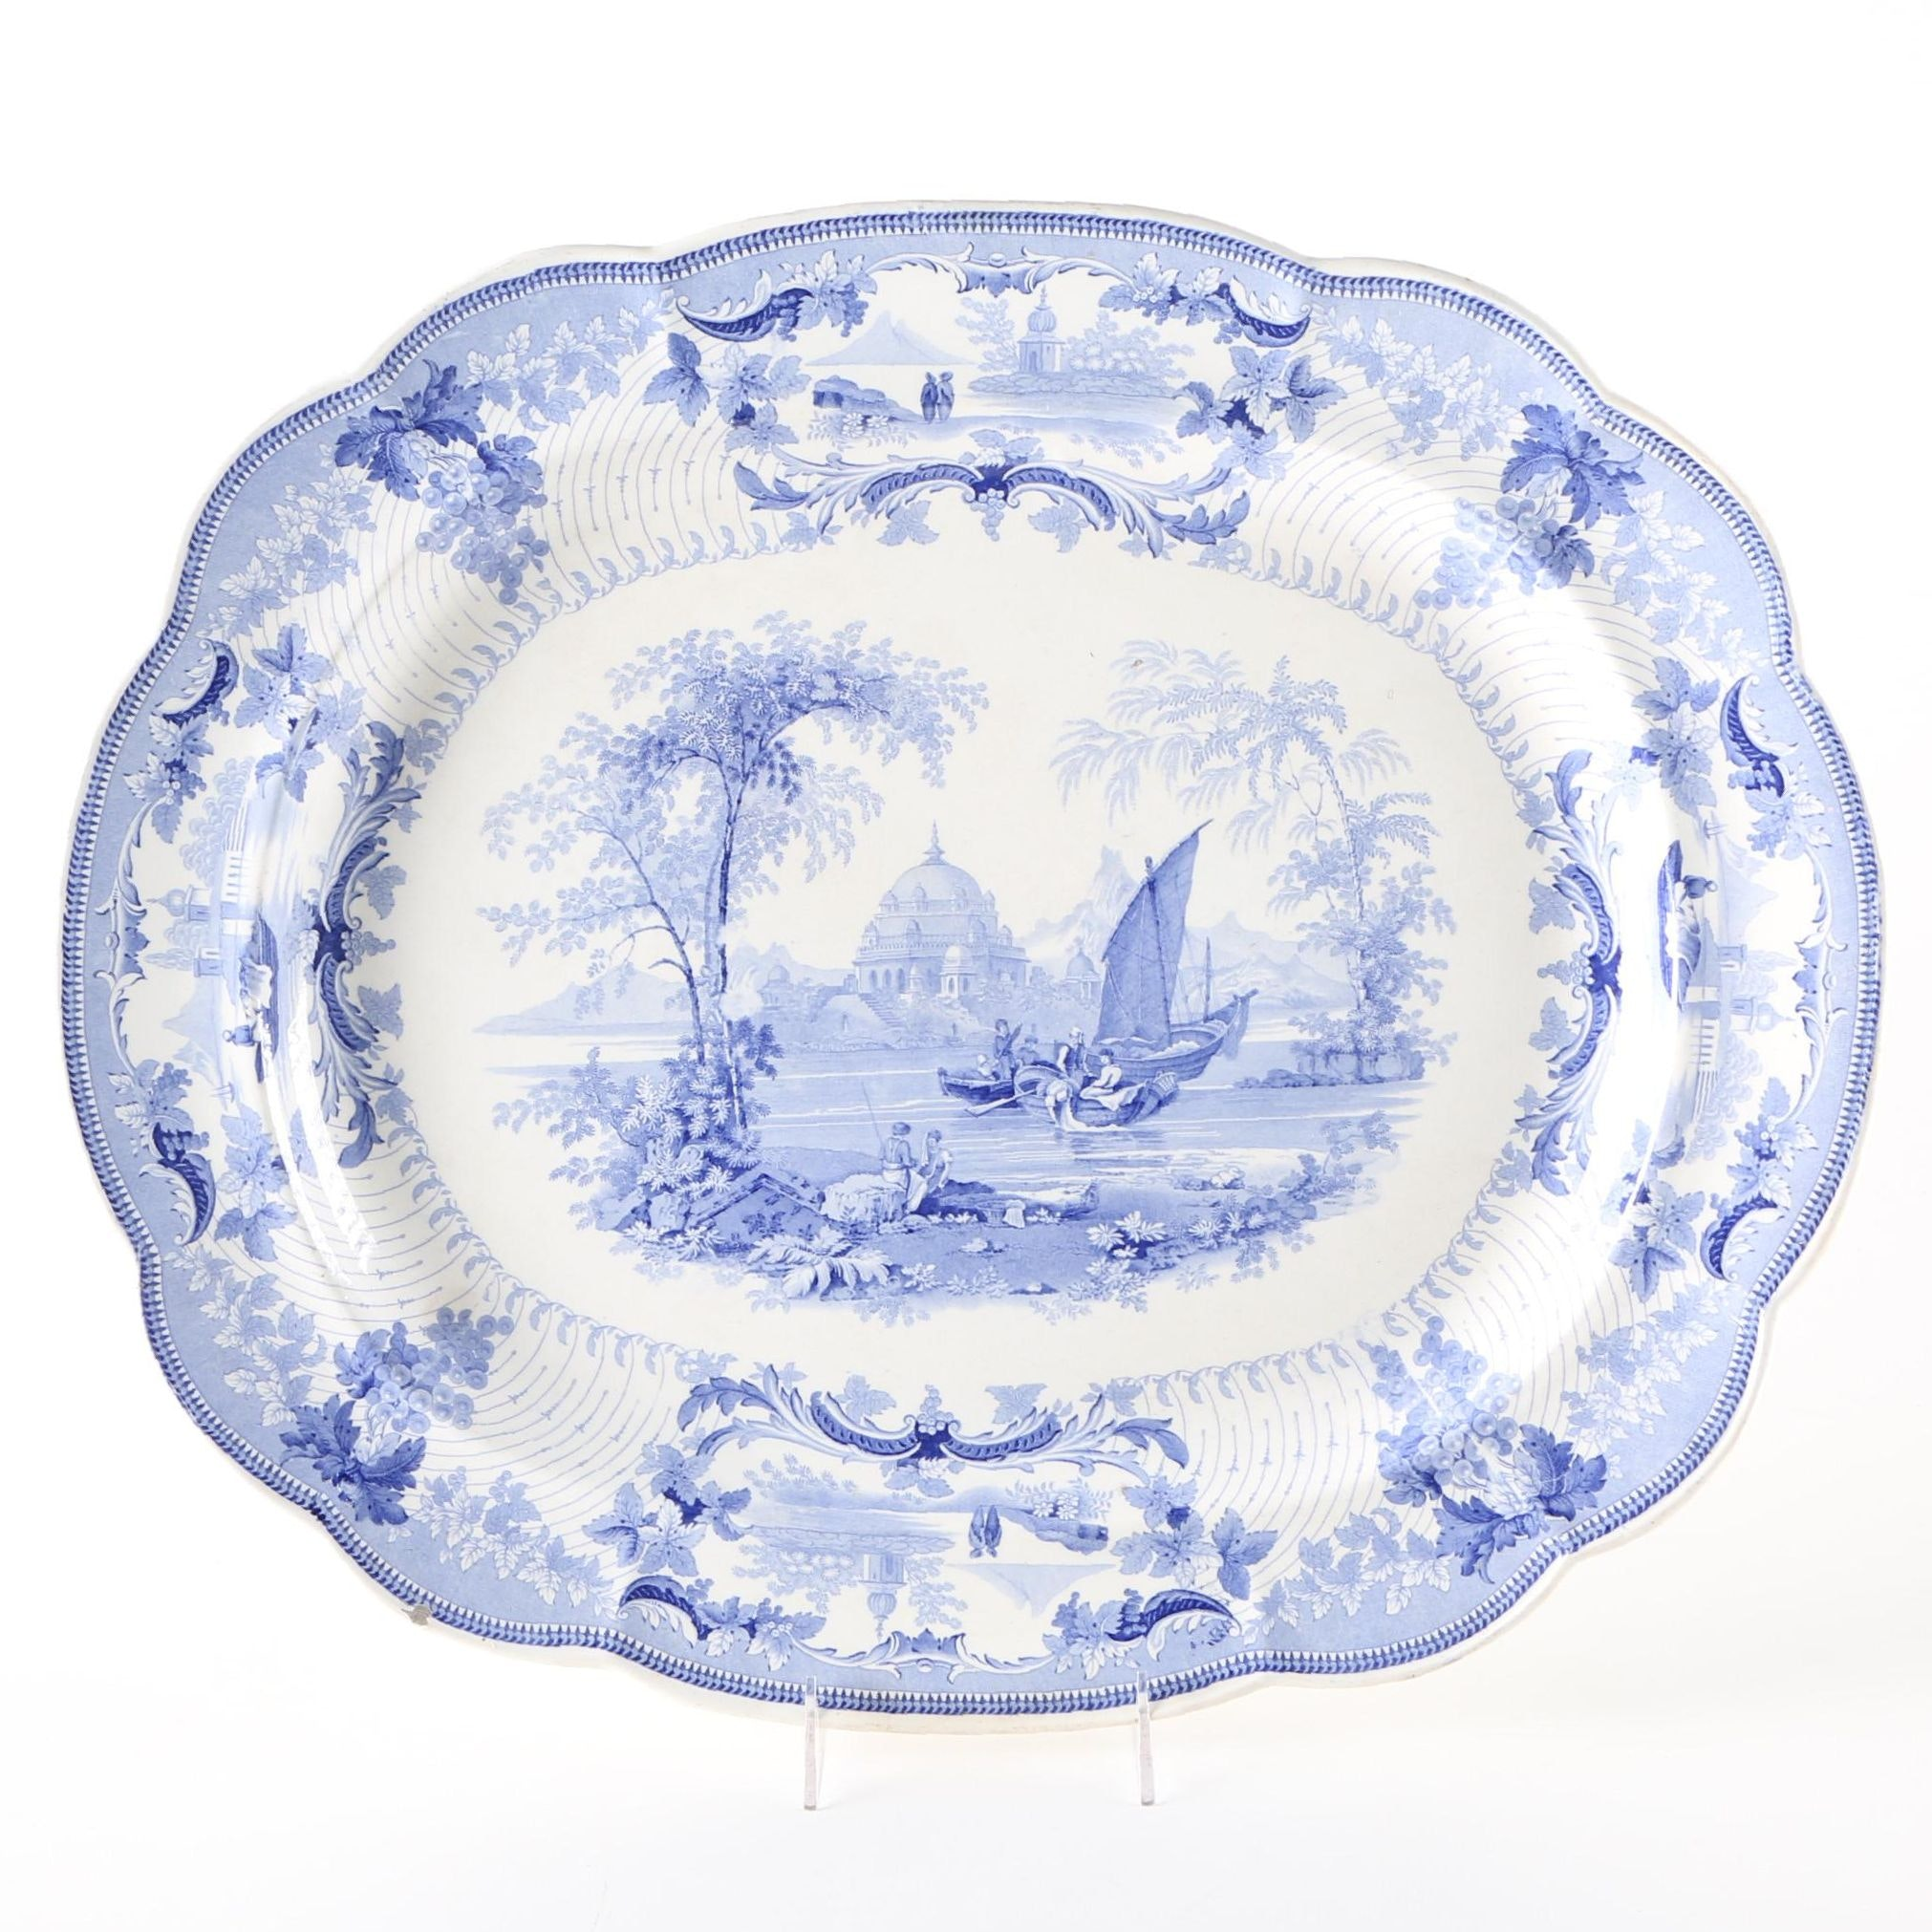 Blue and White 19th Century China Platter